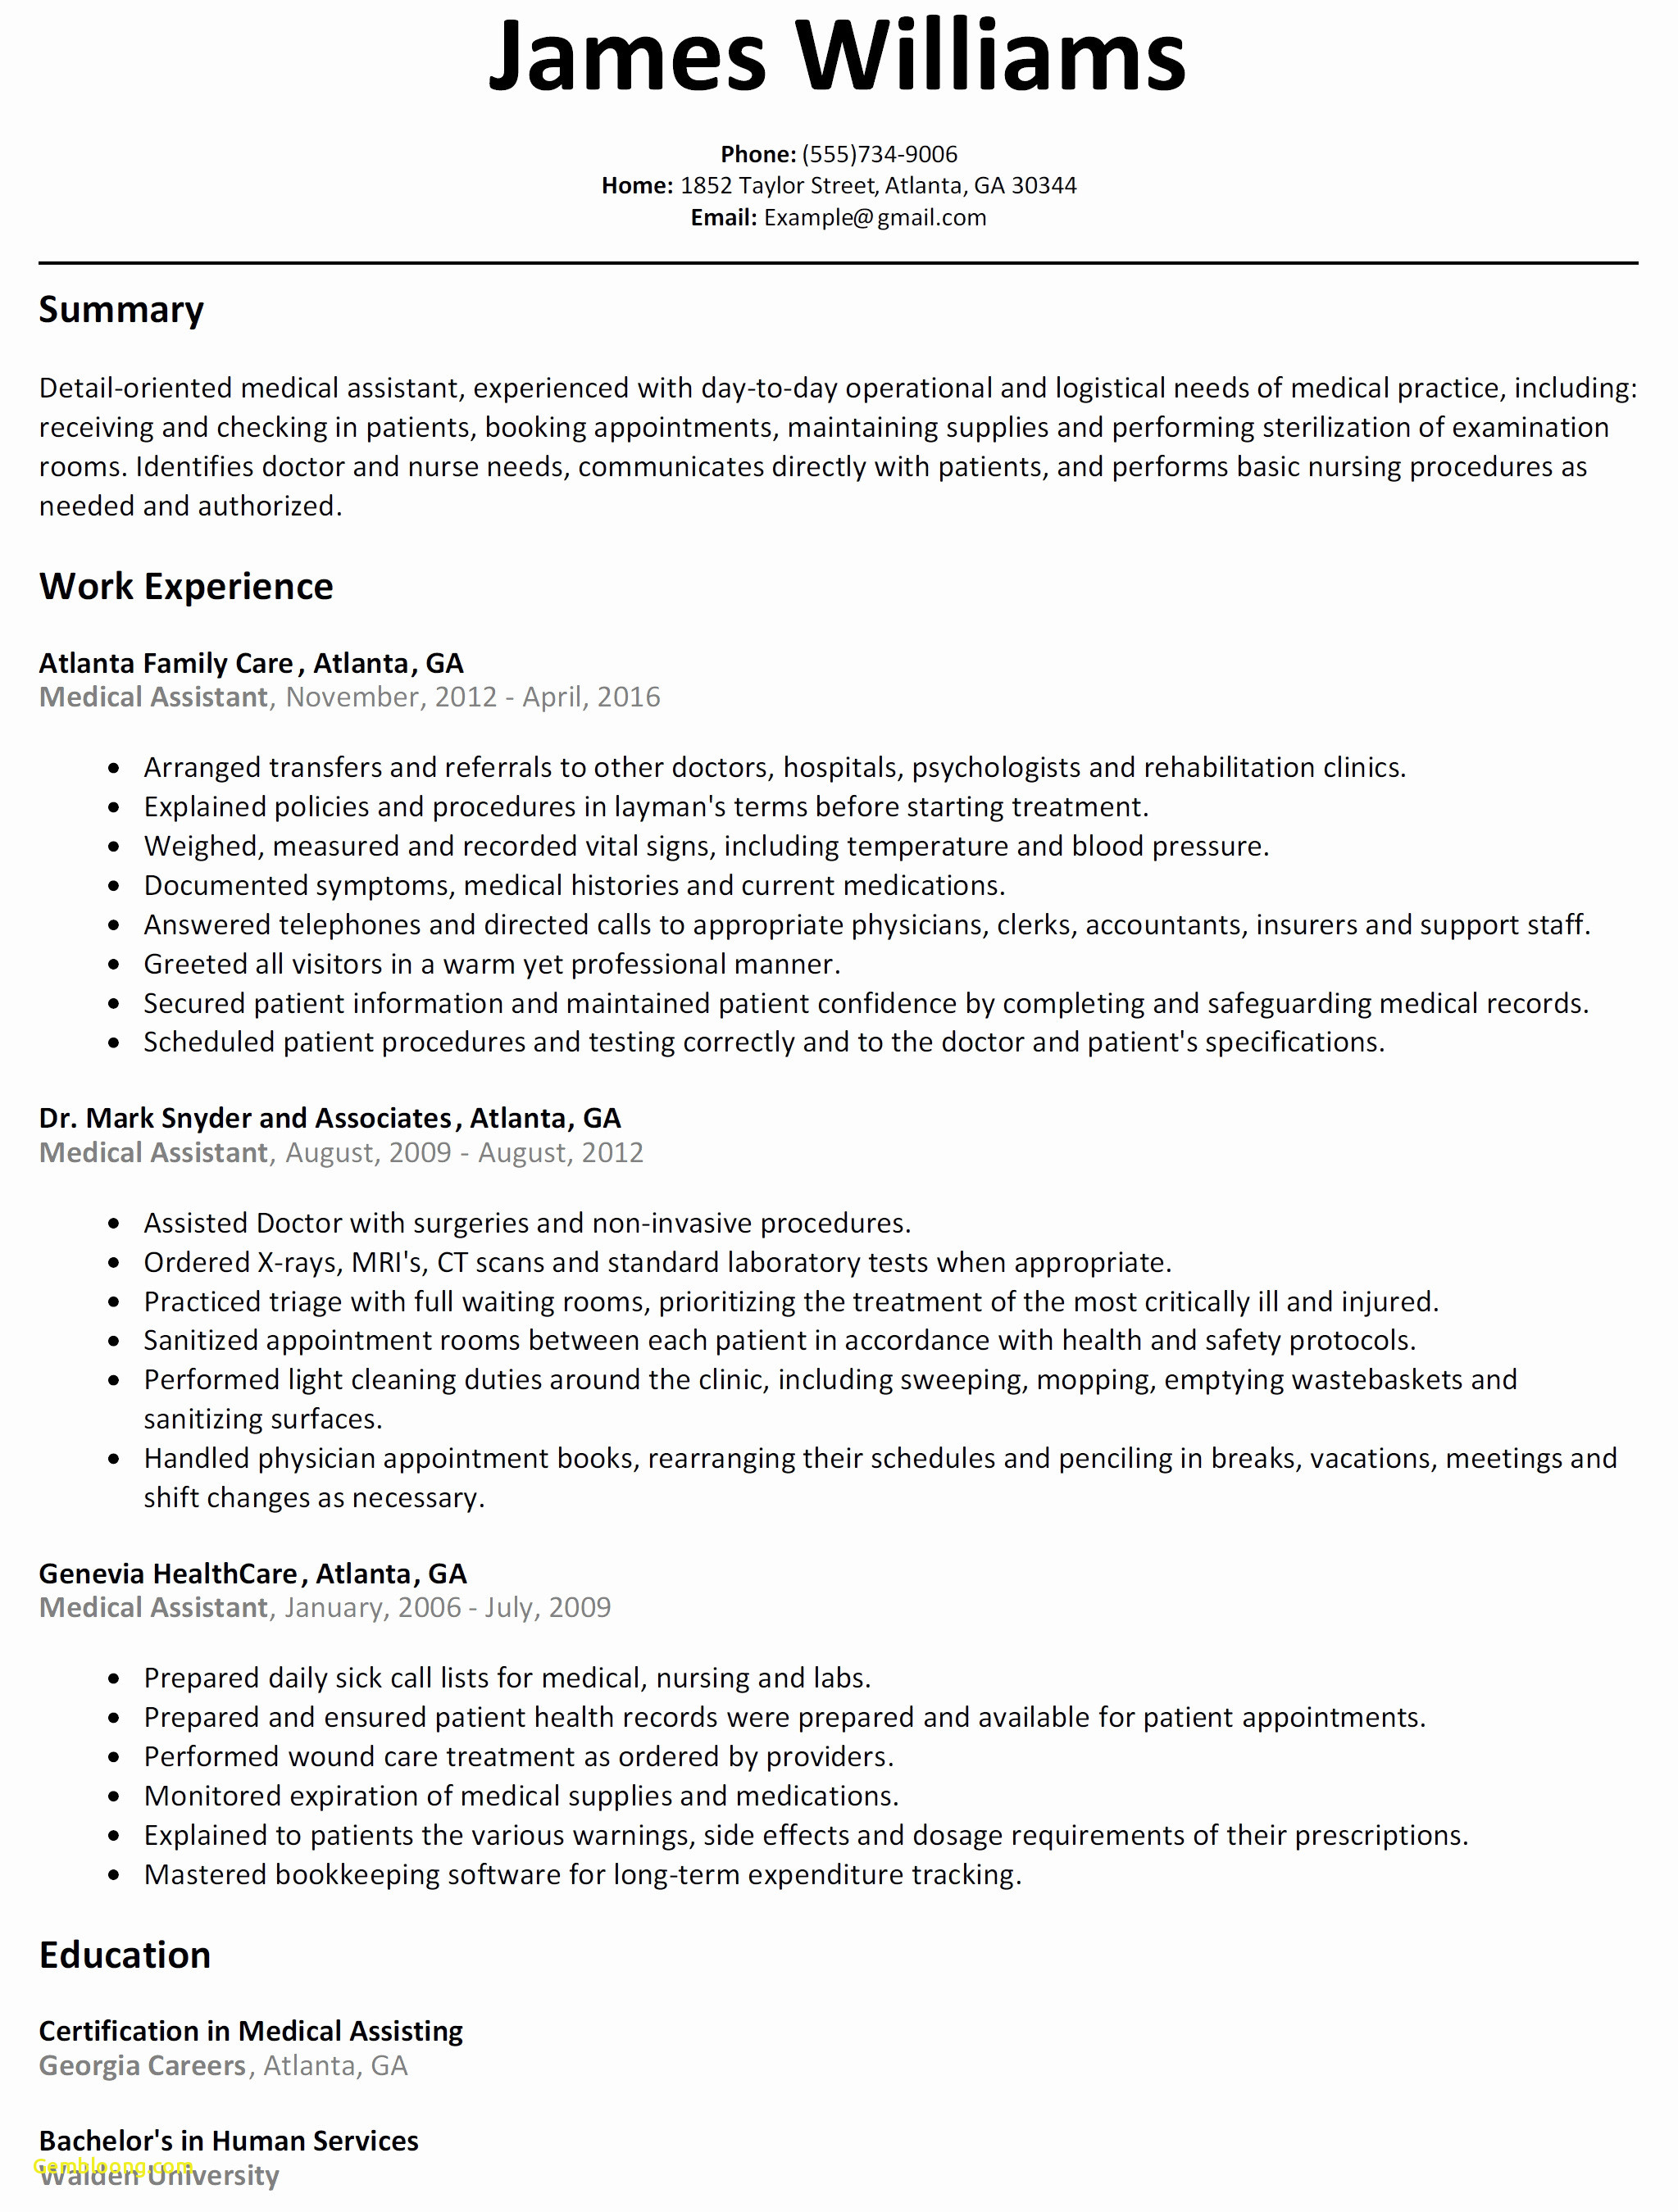 Free Engineering Resume Template - Download Fresh Medical Design Engineer Sample Resume